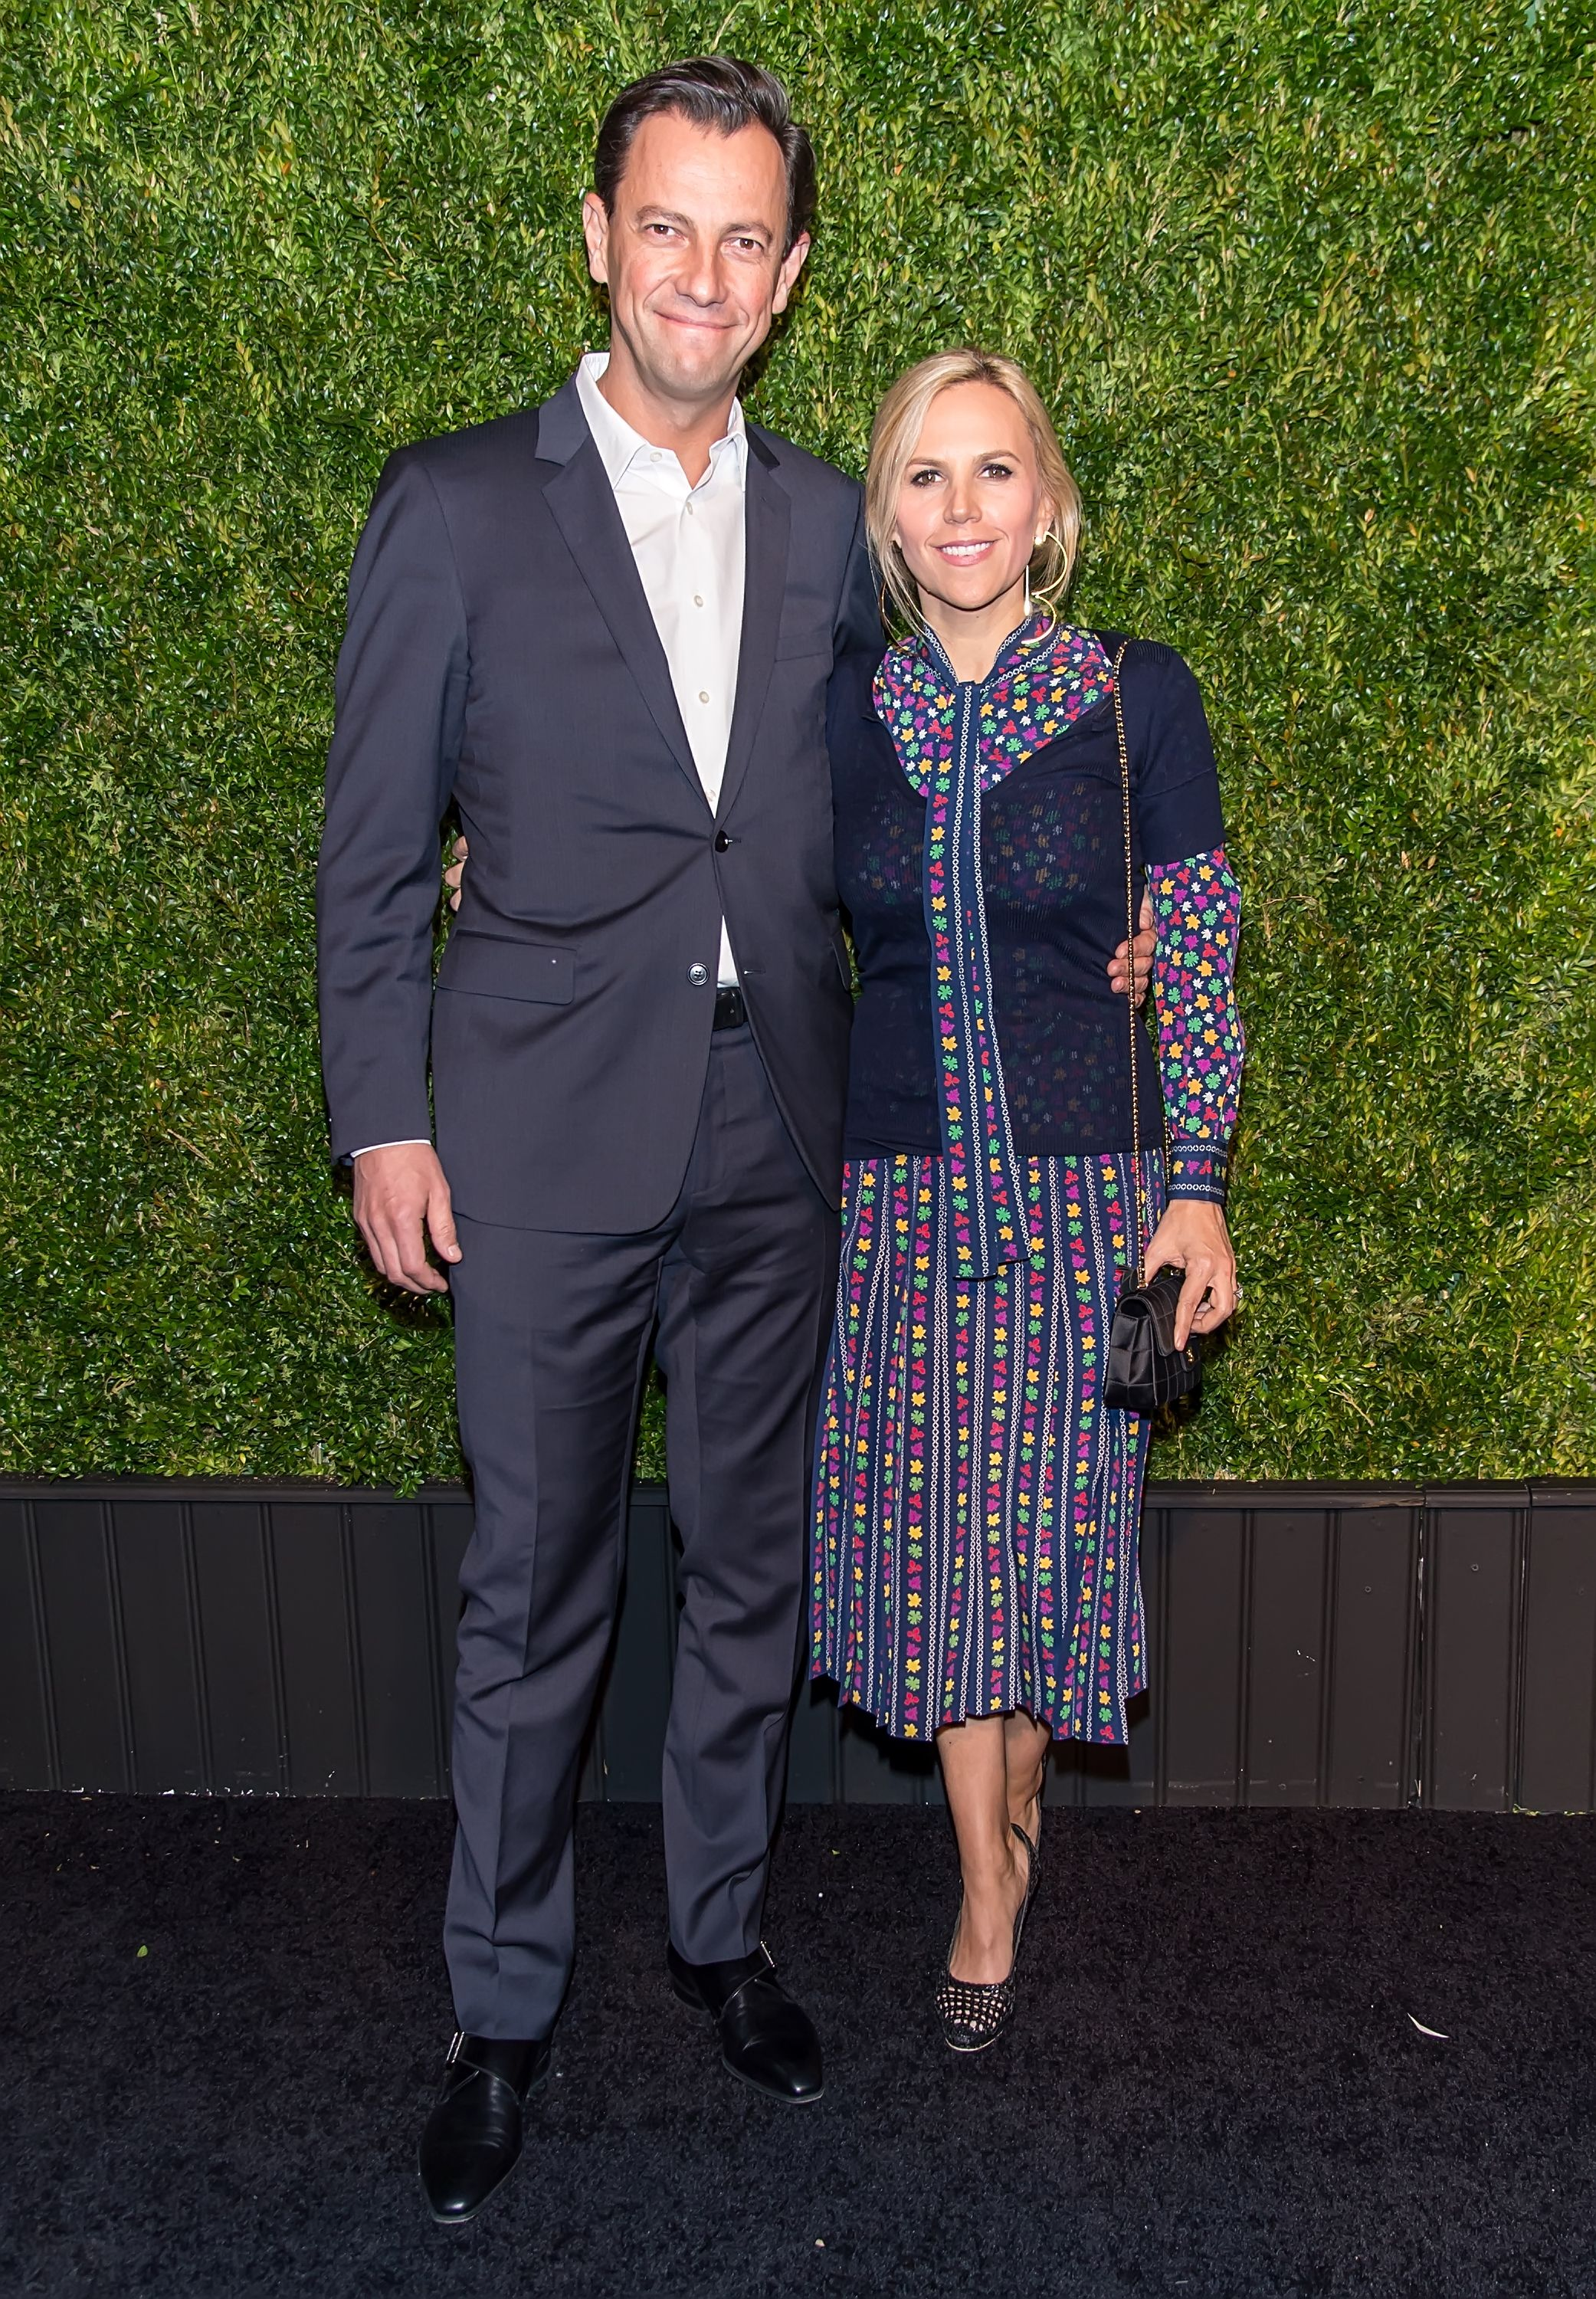 d3b312486c4b Tory Burch Marries Pierre-Yves Roussel in an Intimate Ceremony at Her  Antigua Estate